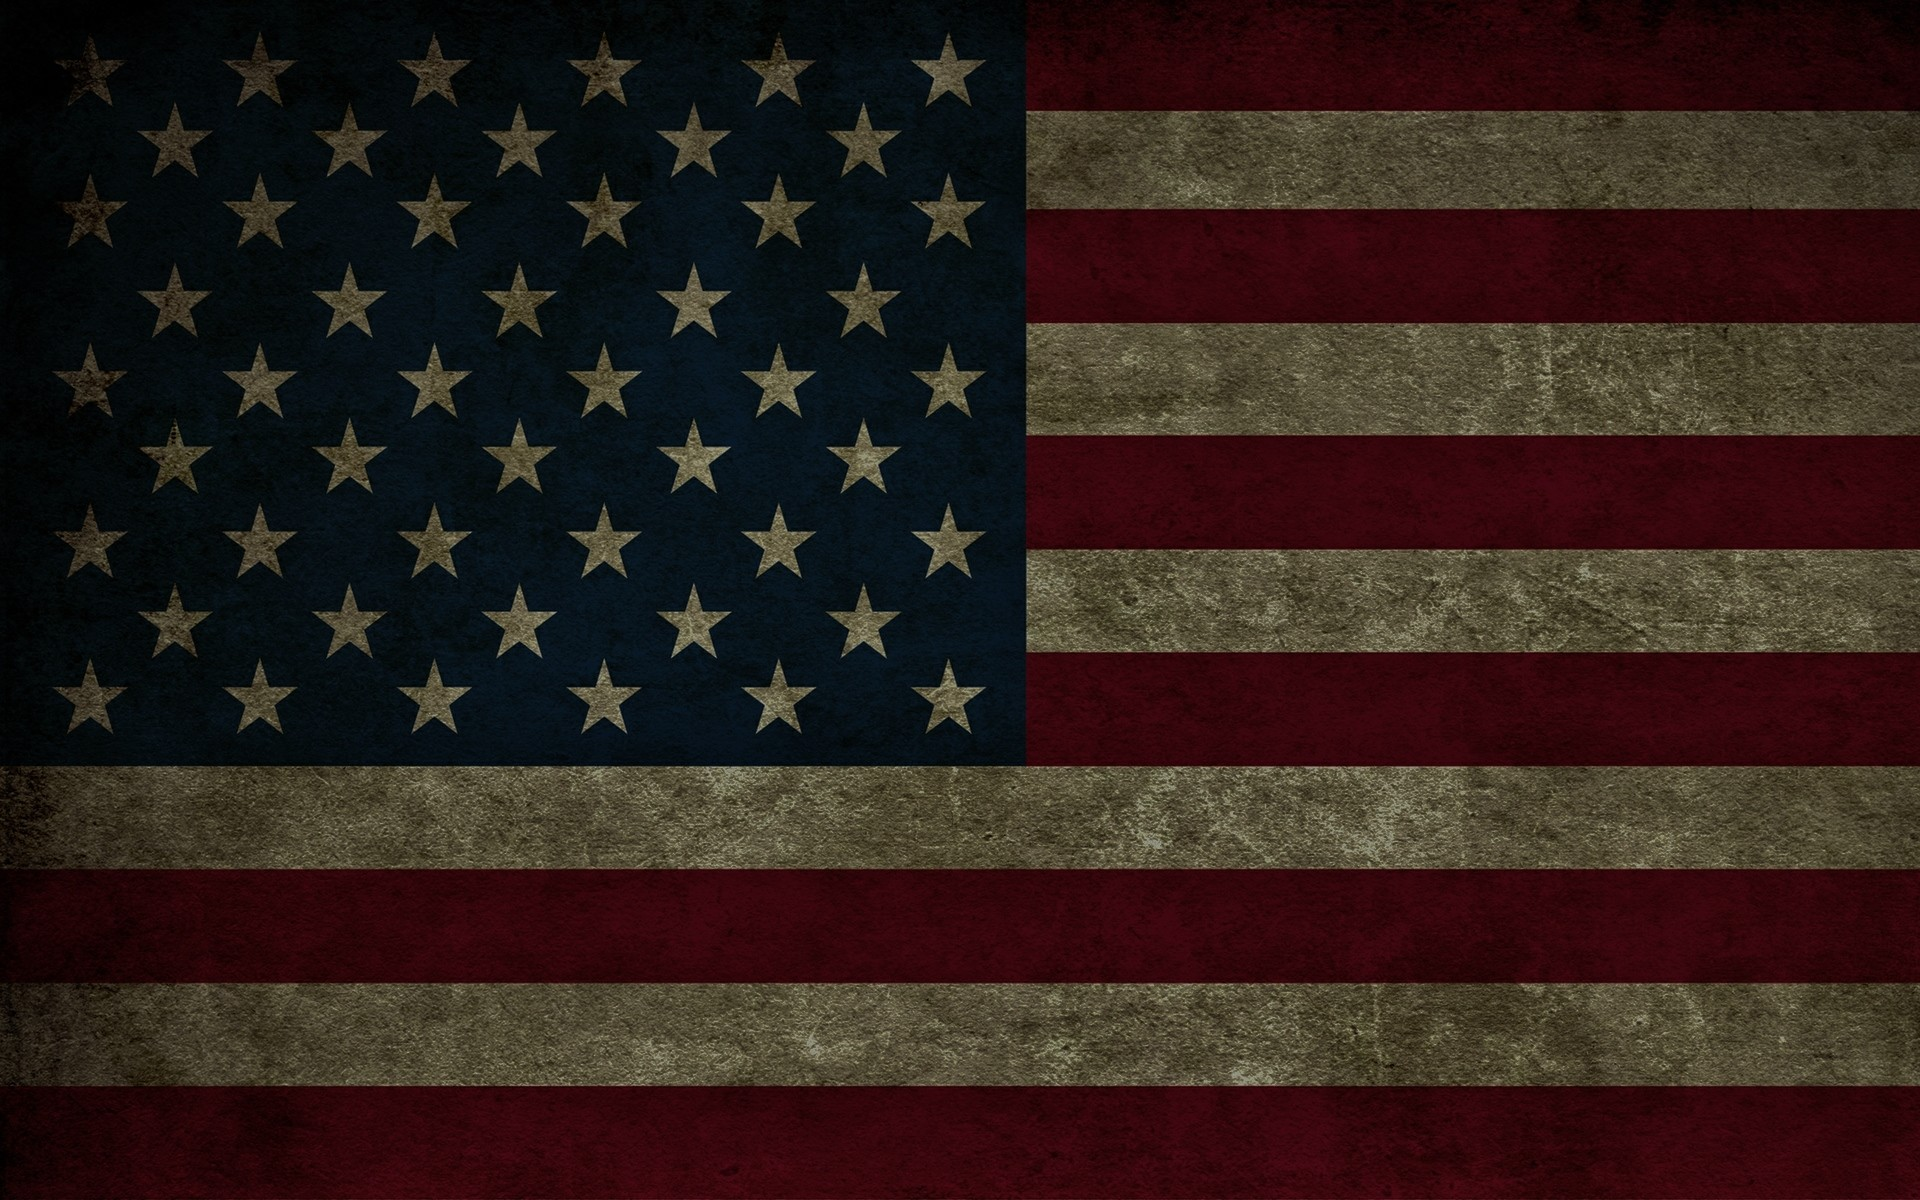 1920x1200 Widescreen Wallpaper American Flag Wallpaper #3497